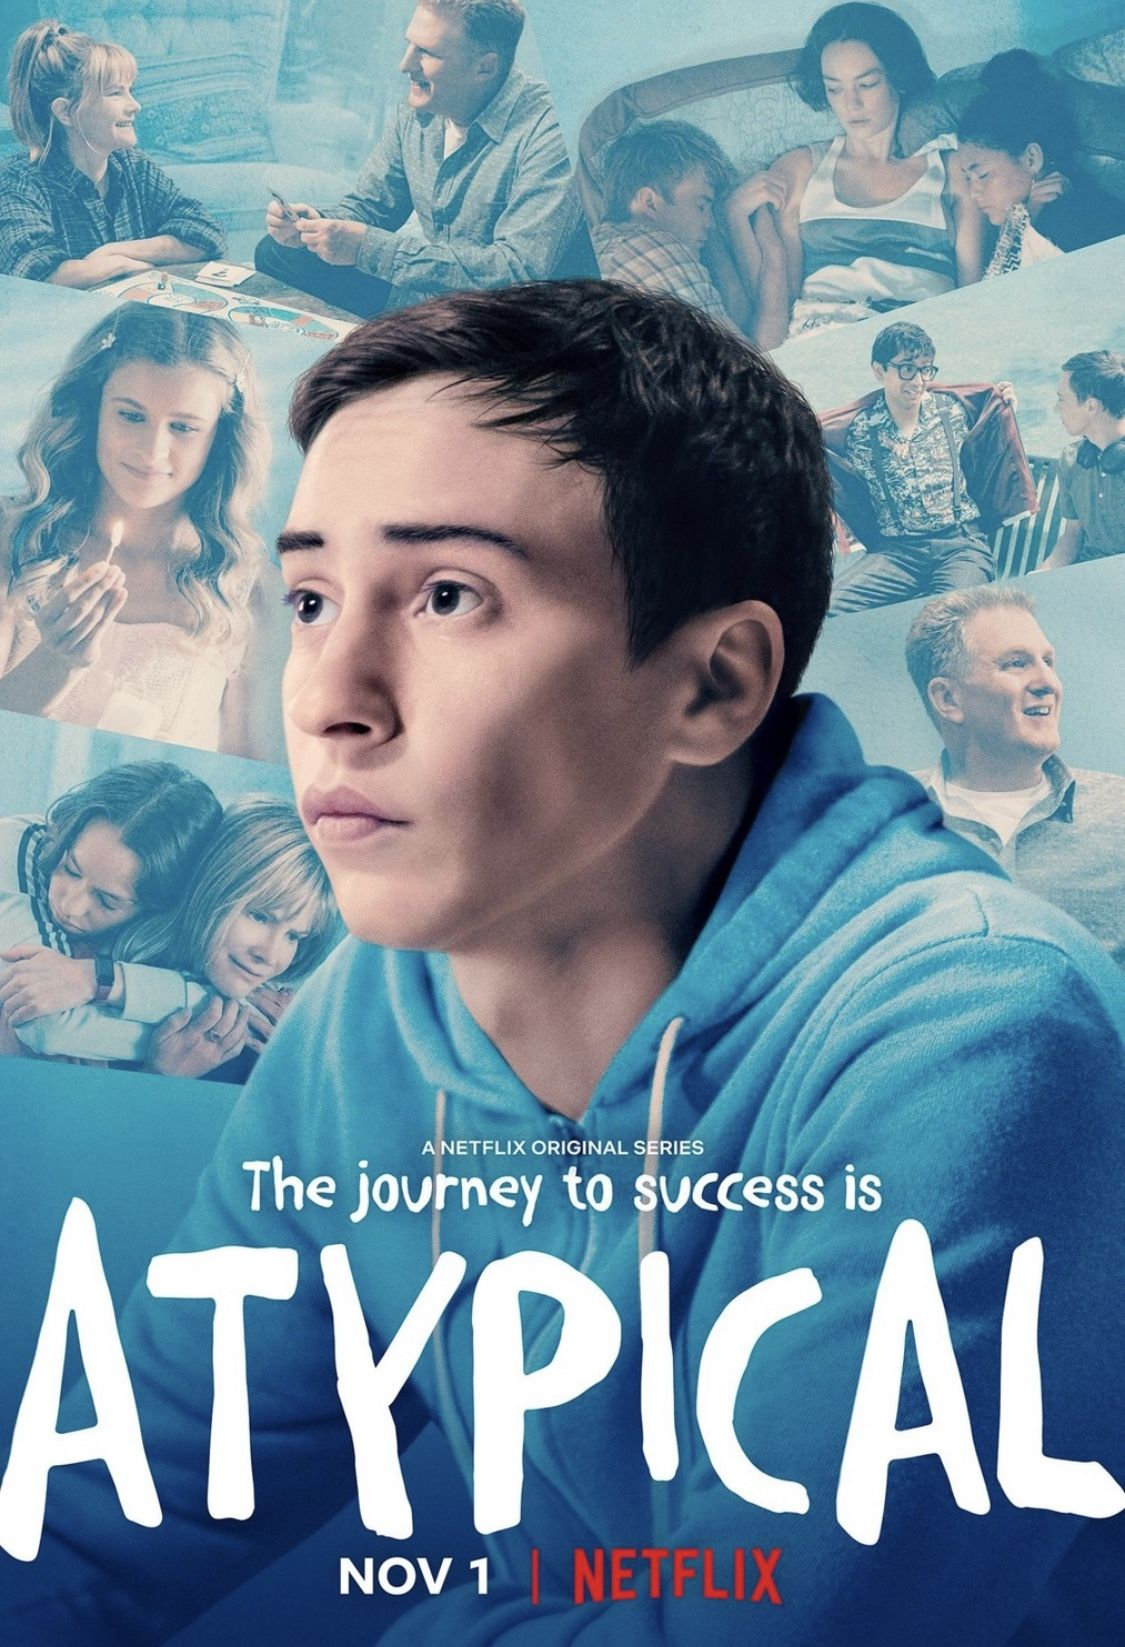 Atypical Atypical, Tv series 2017, Michael rapaport